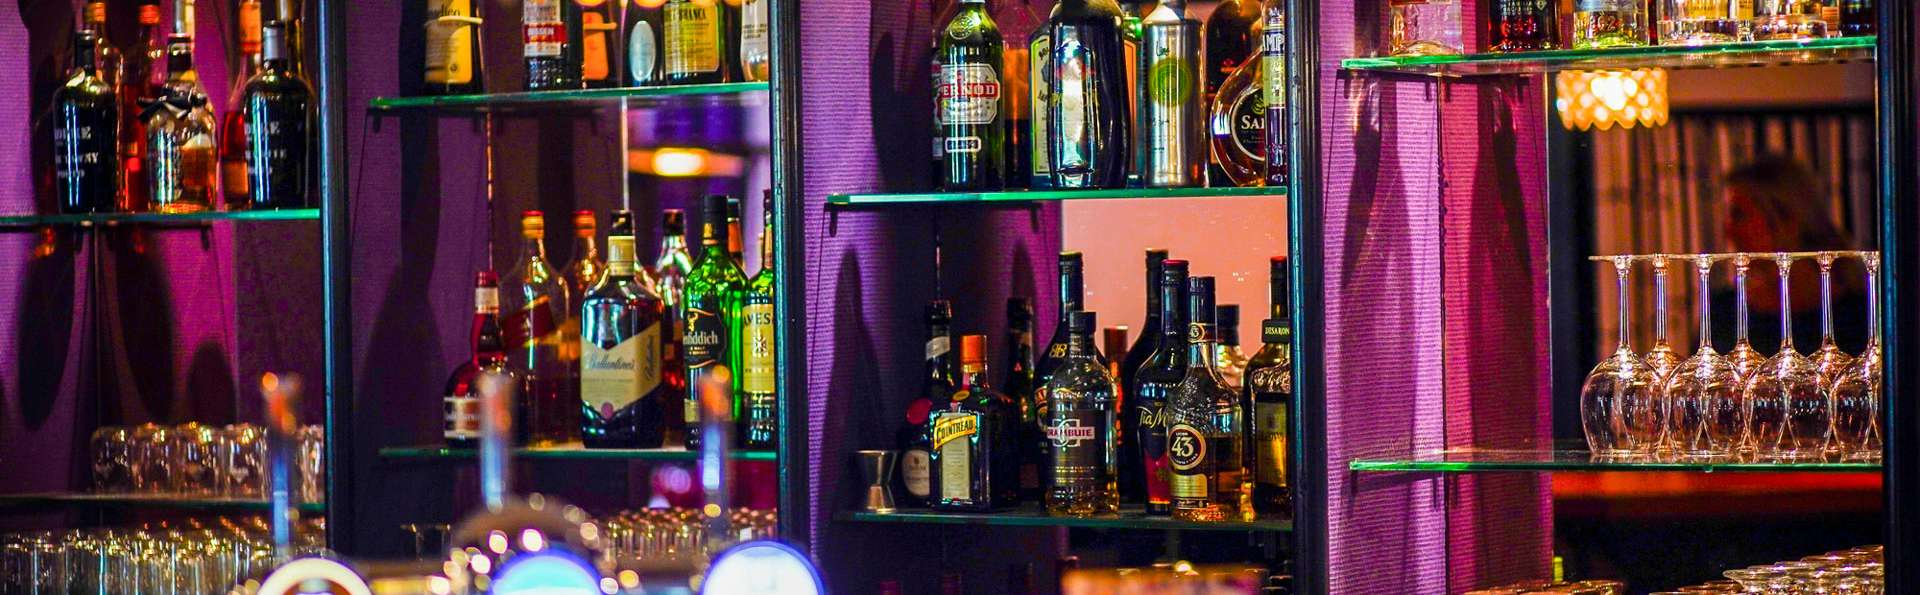 Hotel Gorinchem - EDIT_NEW_BAR_01.jpg